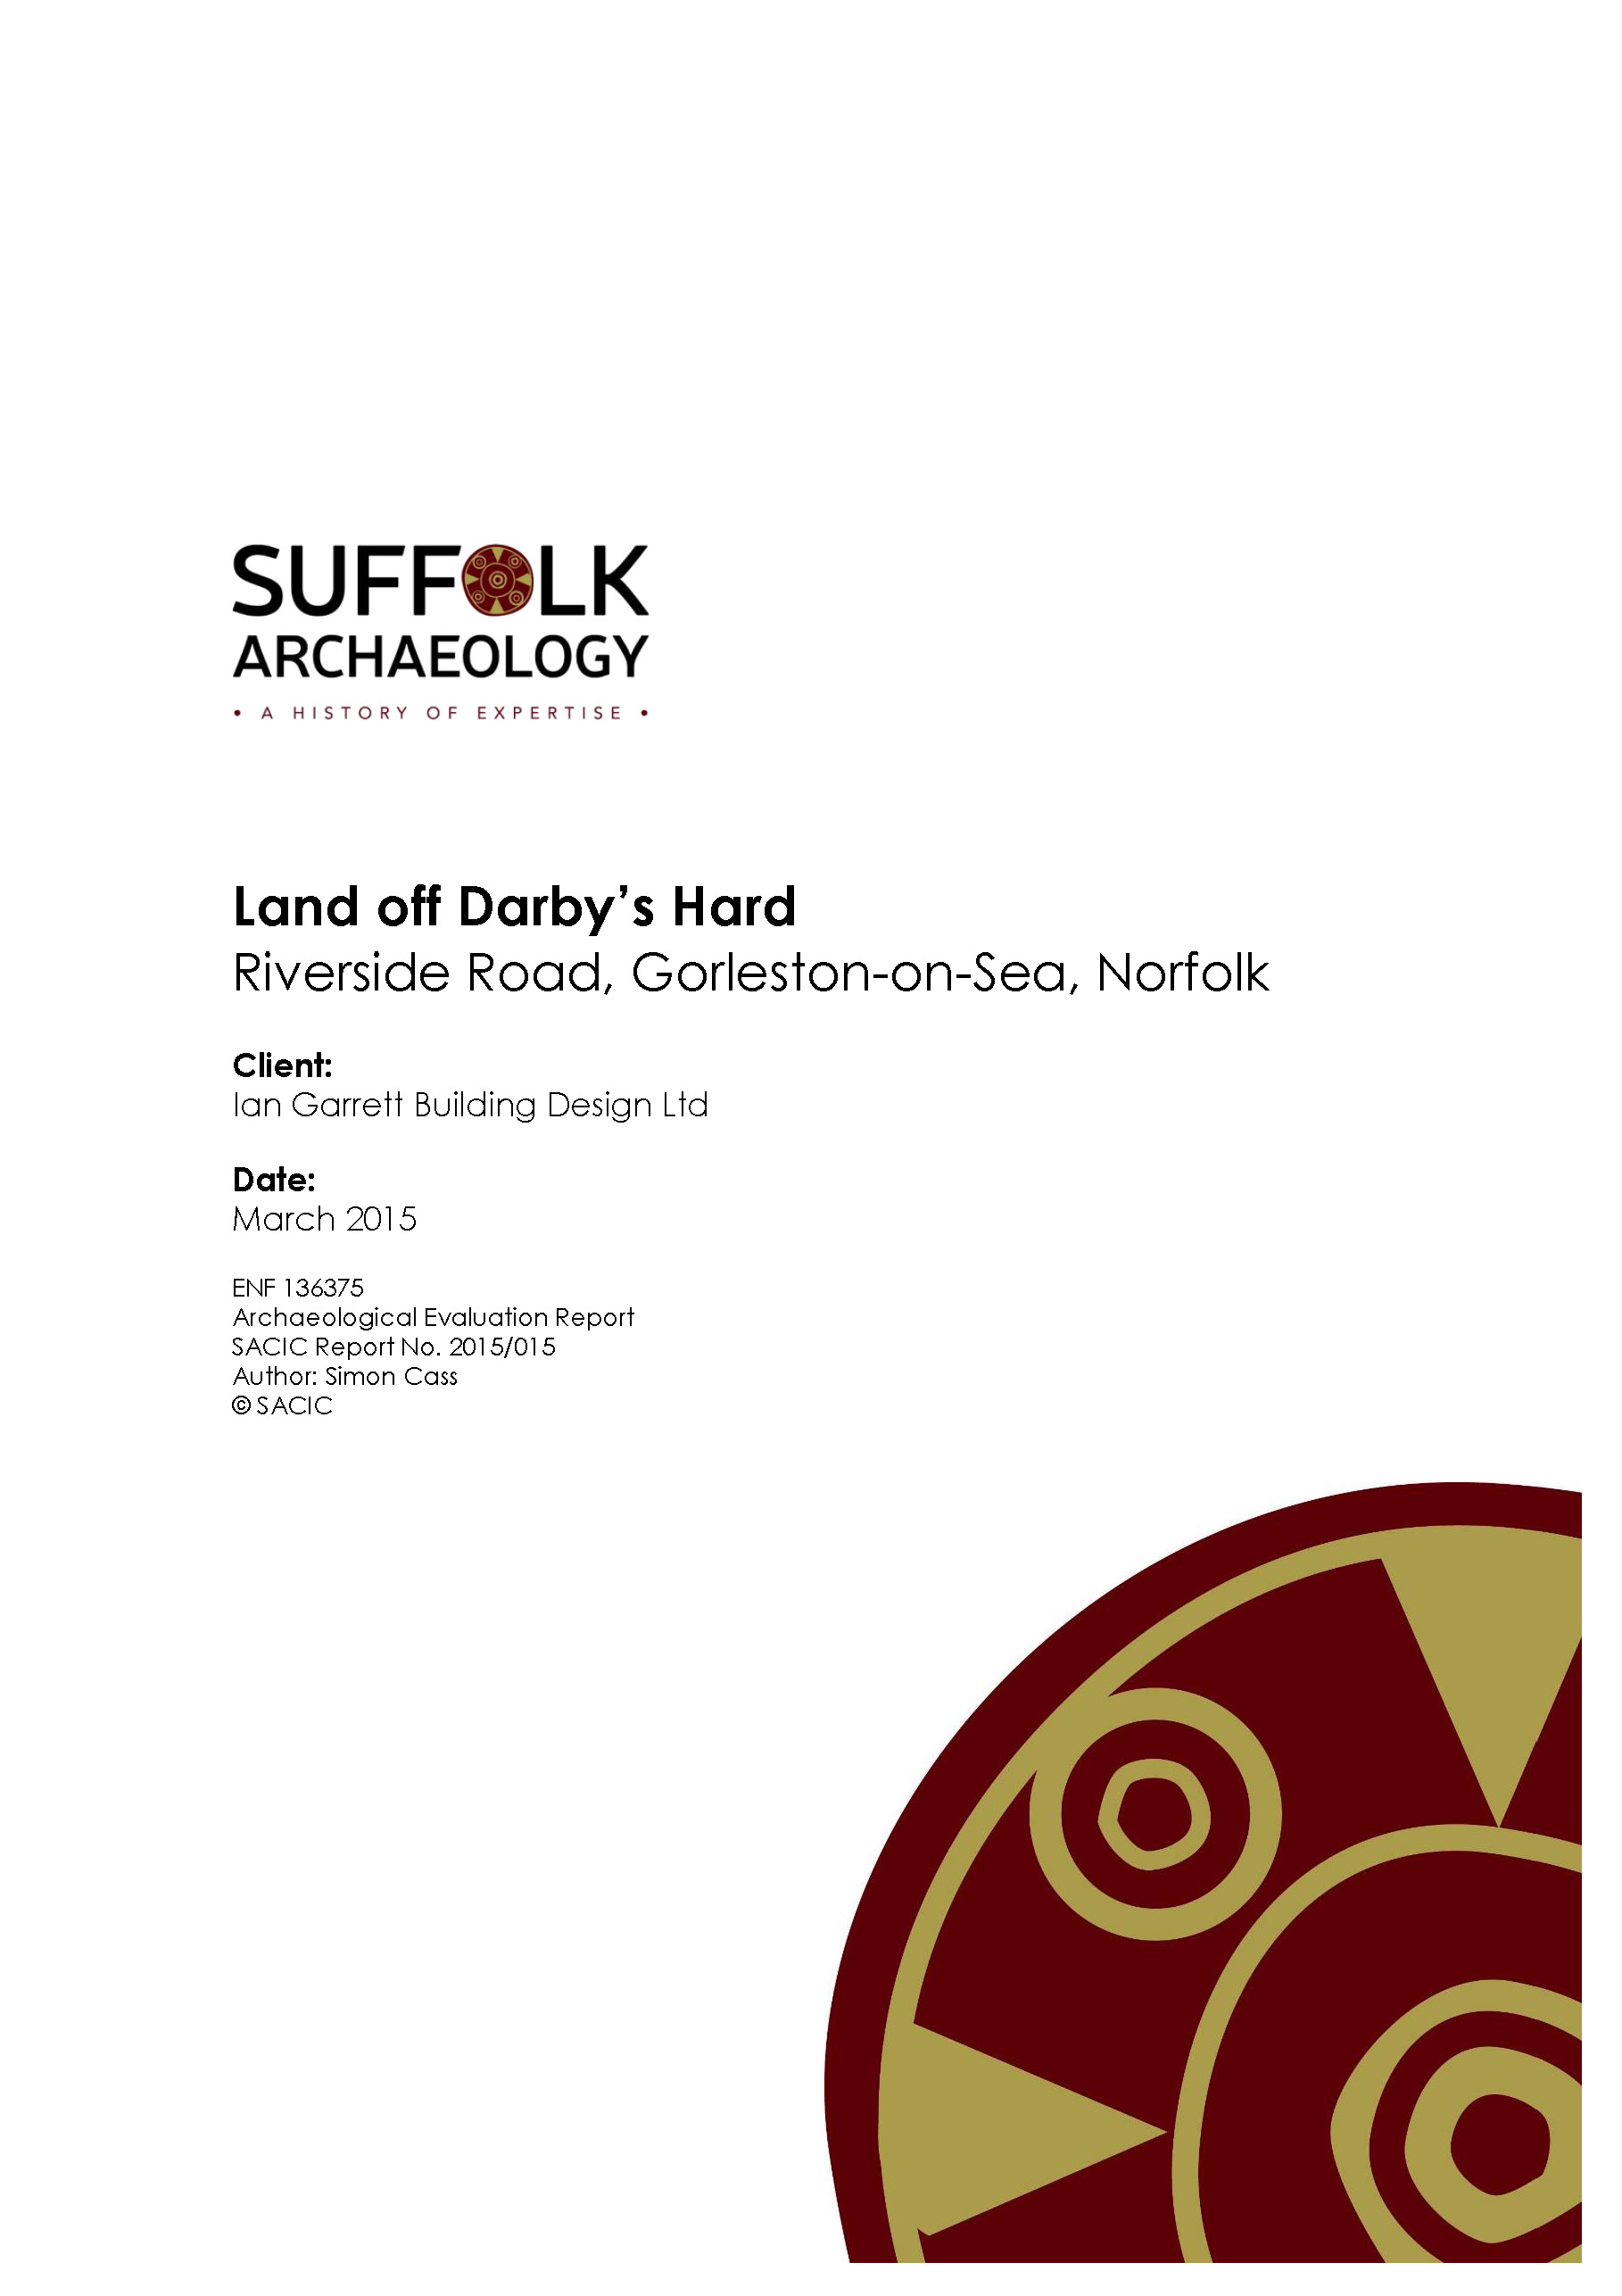 A Suffolk Archaeology report cover